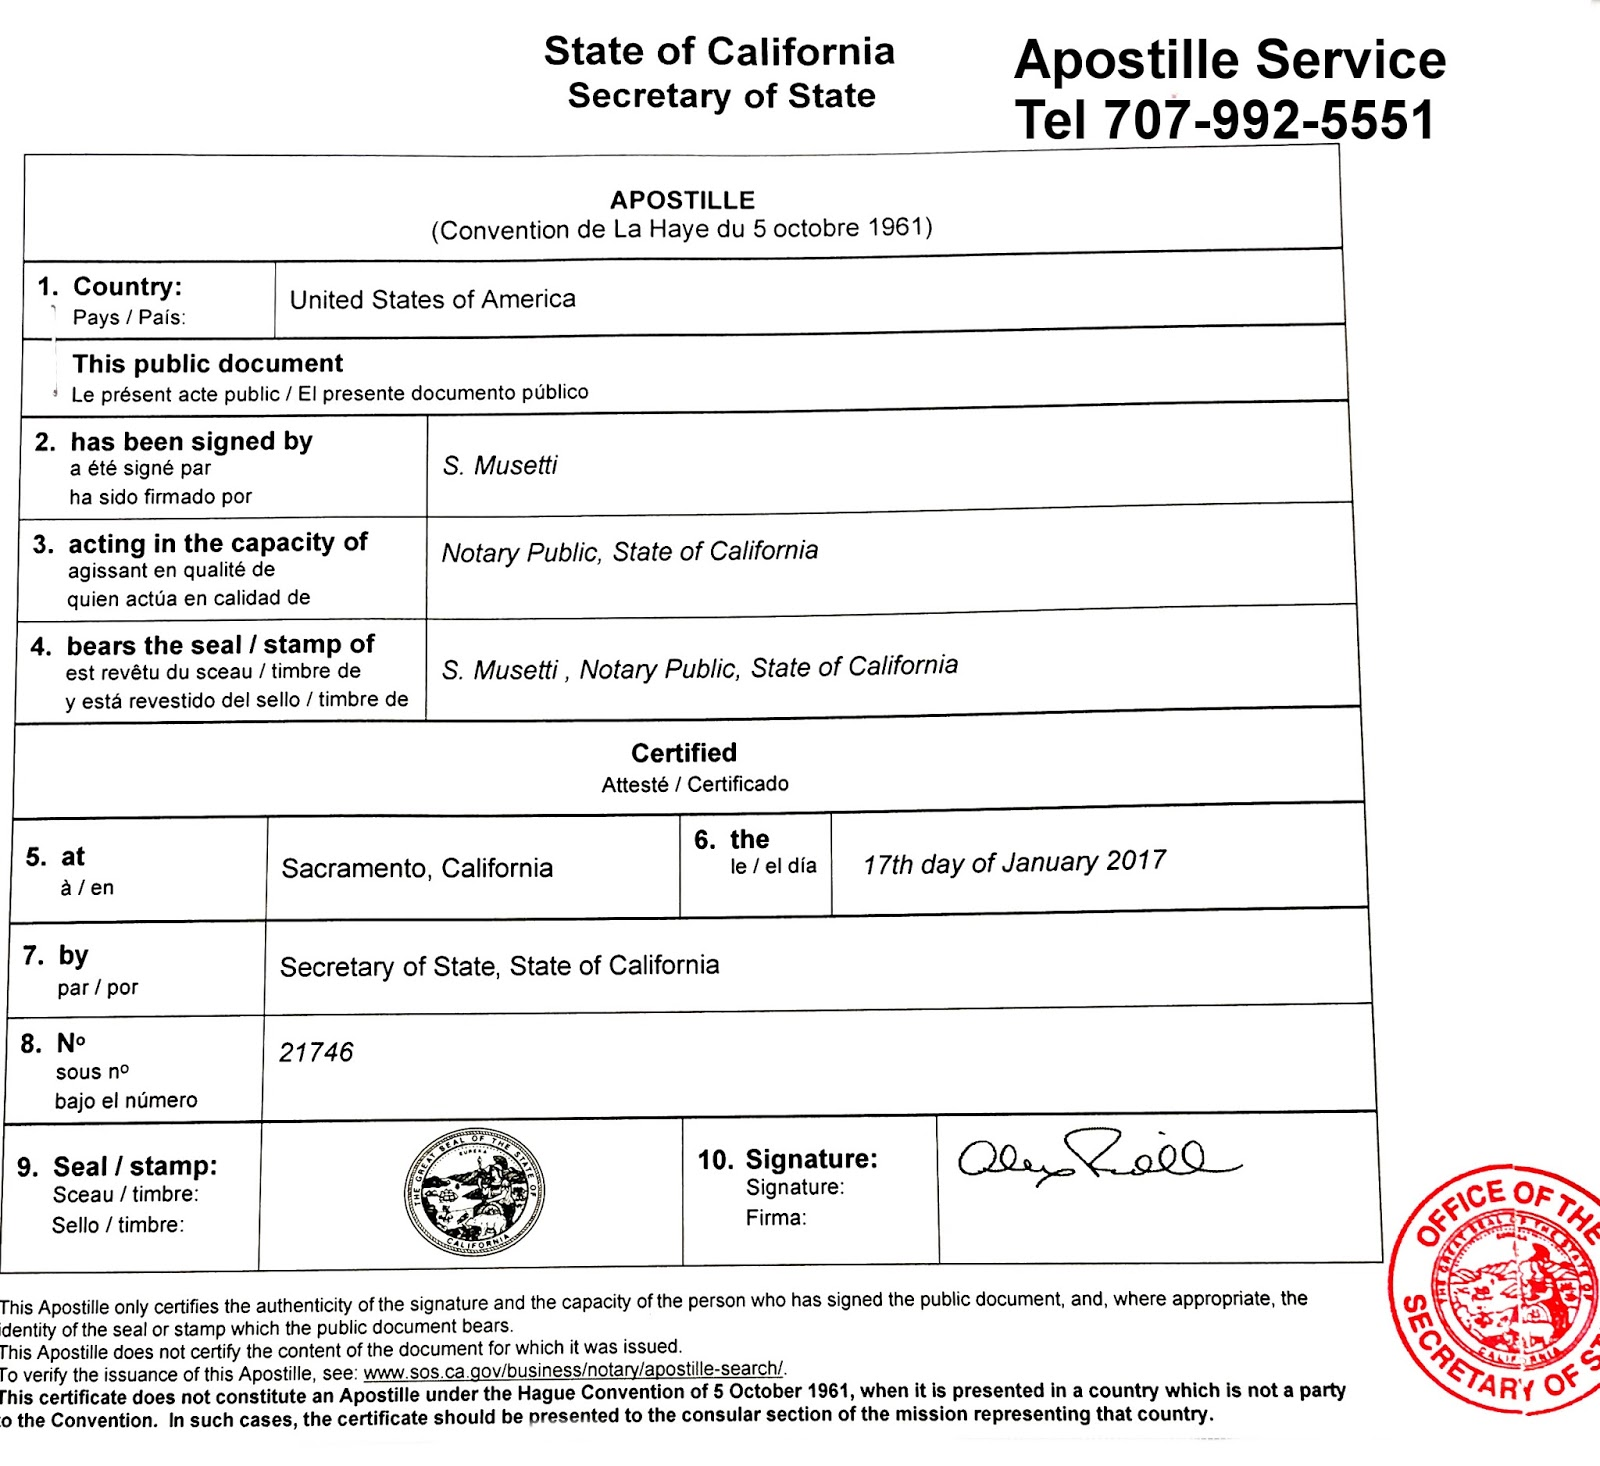 Apostille service in California | Apostille and Legalization of ...